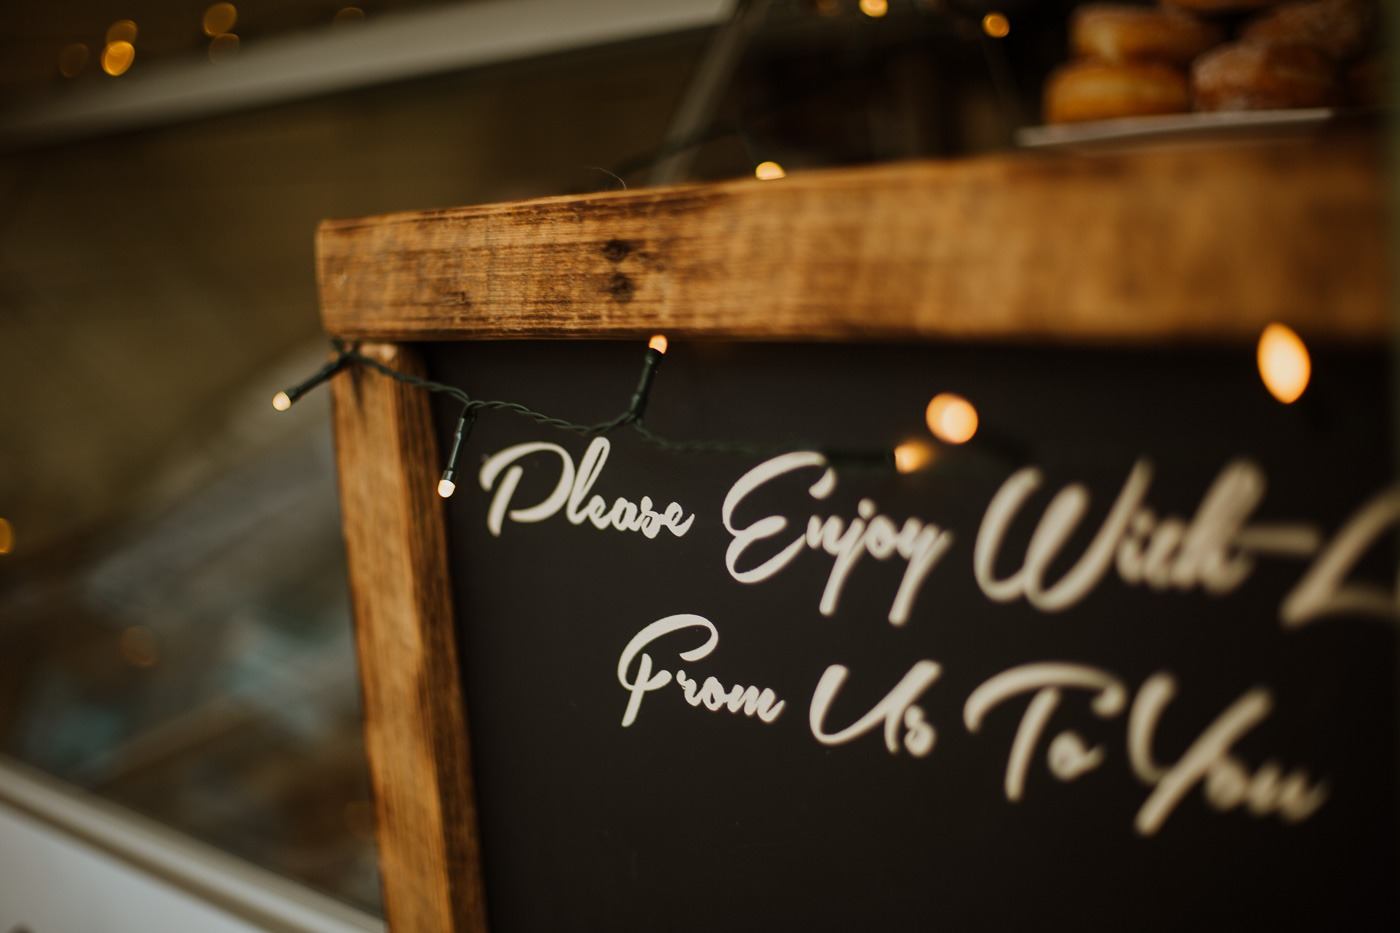 A black sign with white text on a wooden table